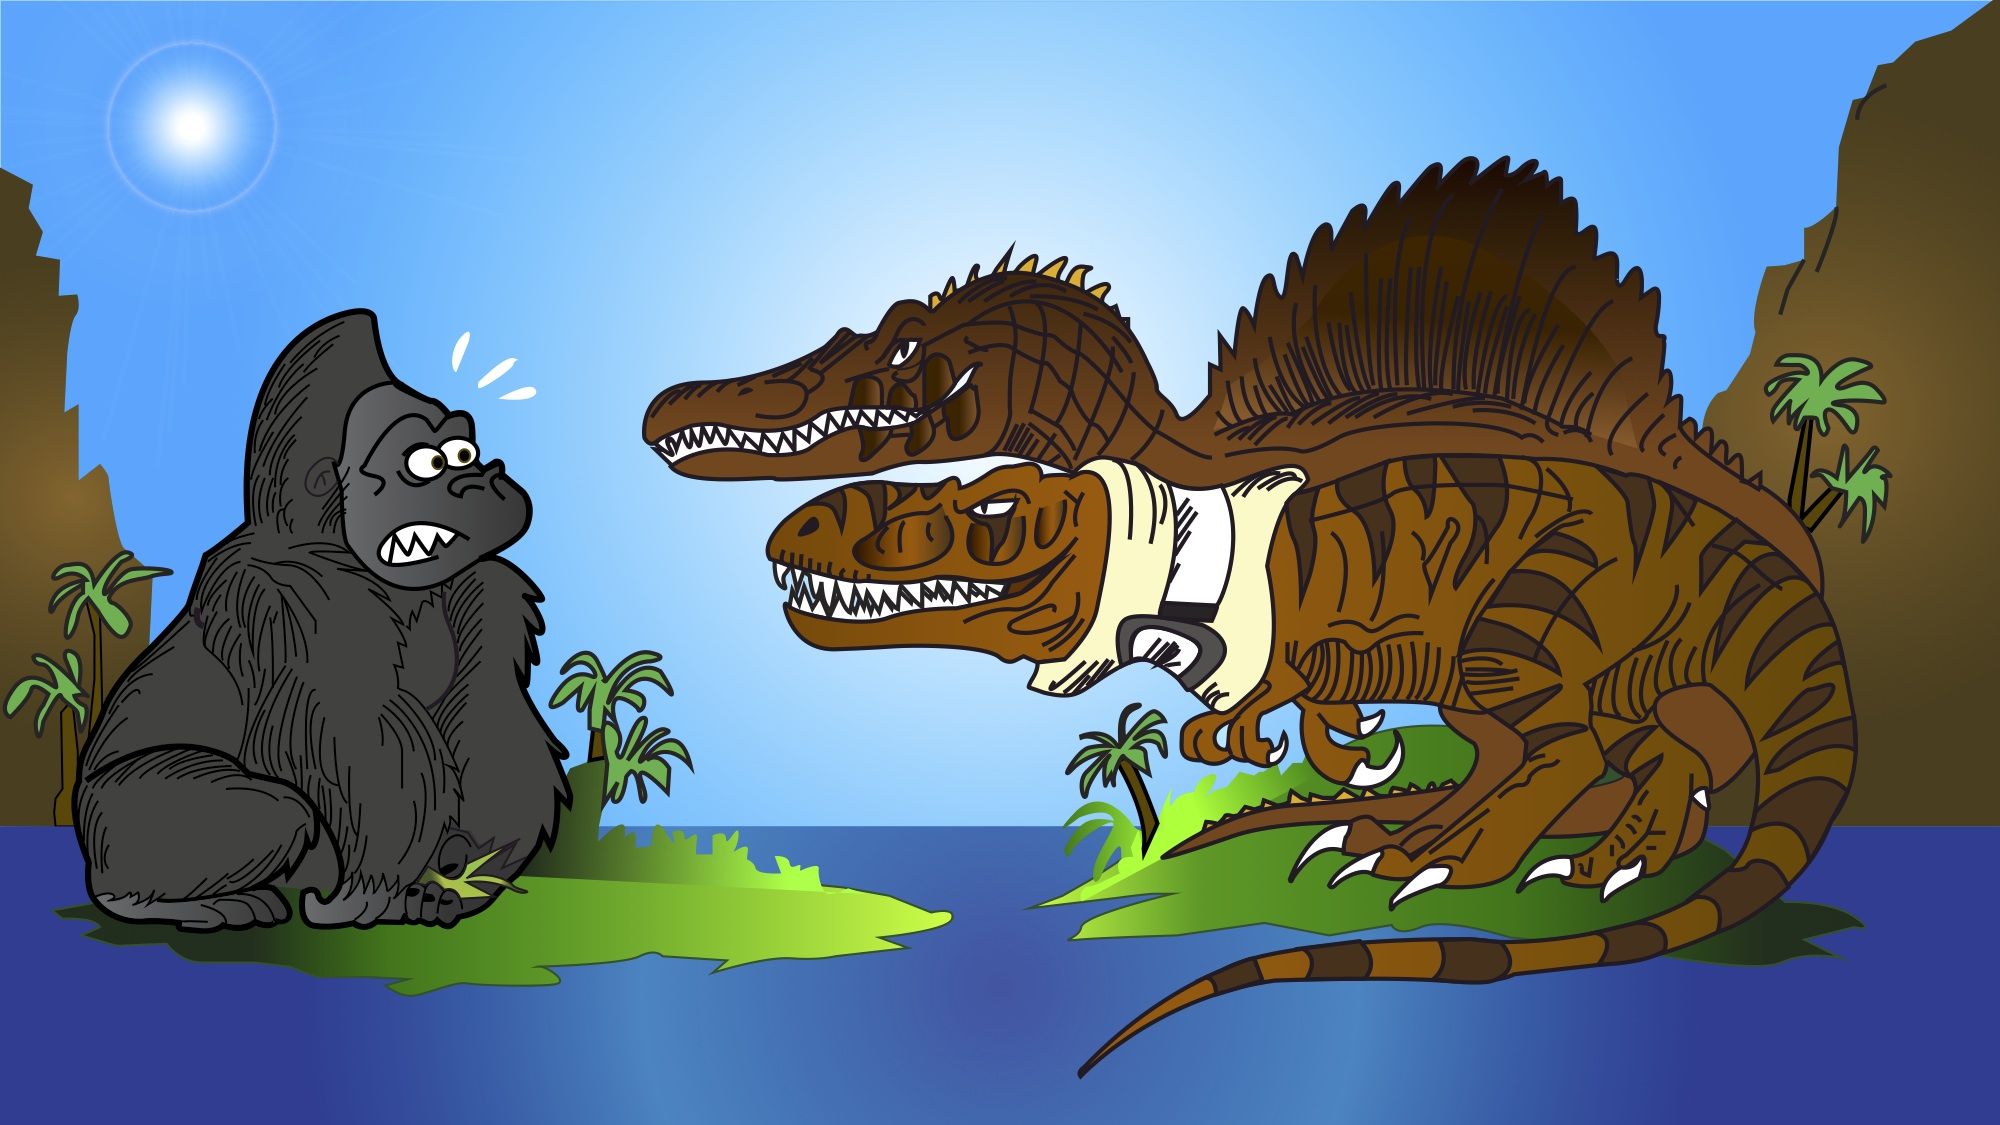 King kong vs t rex and spino by hodarinundu by eanimated